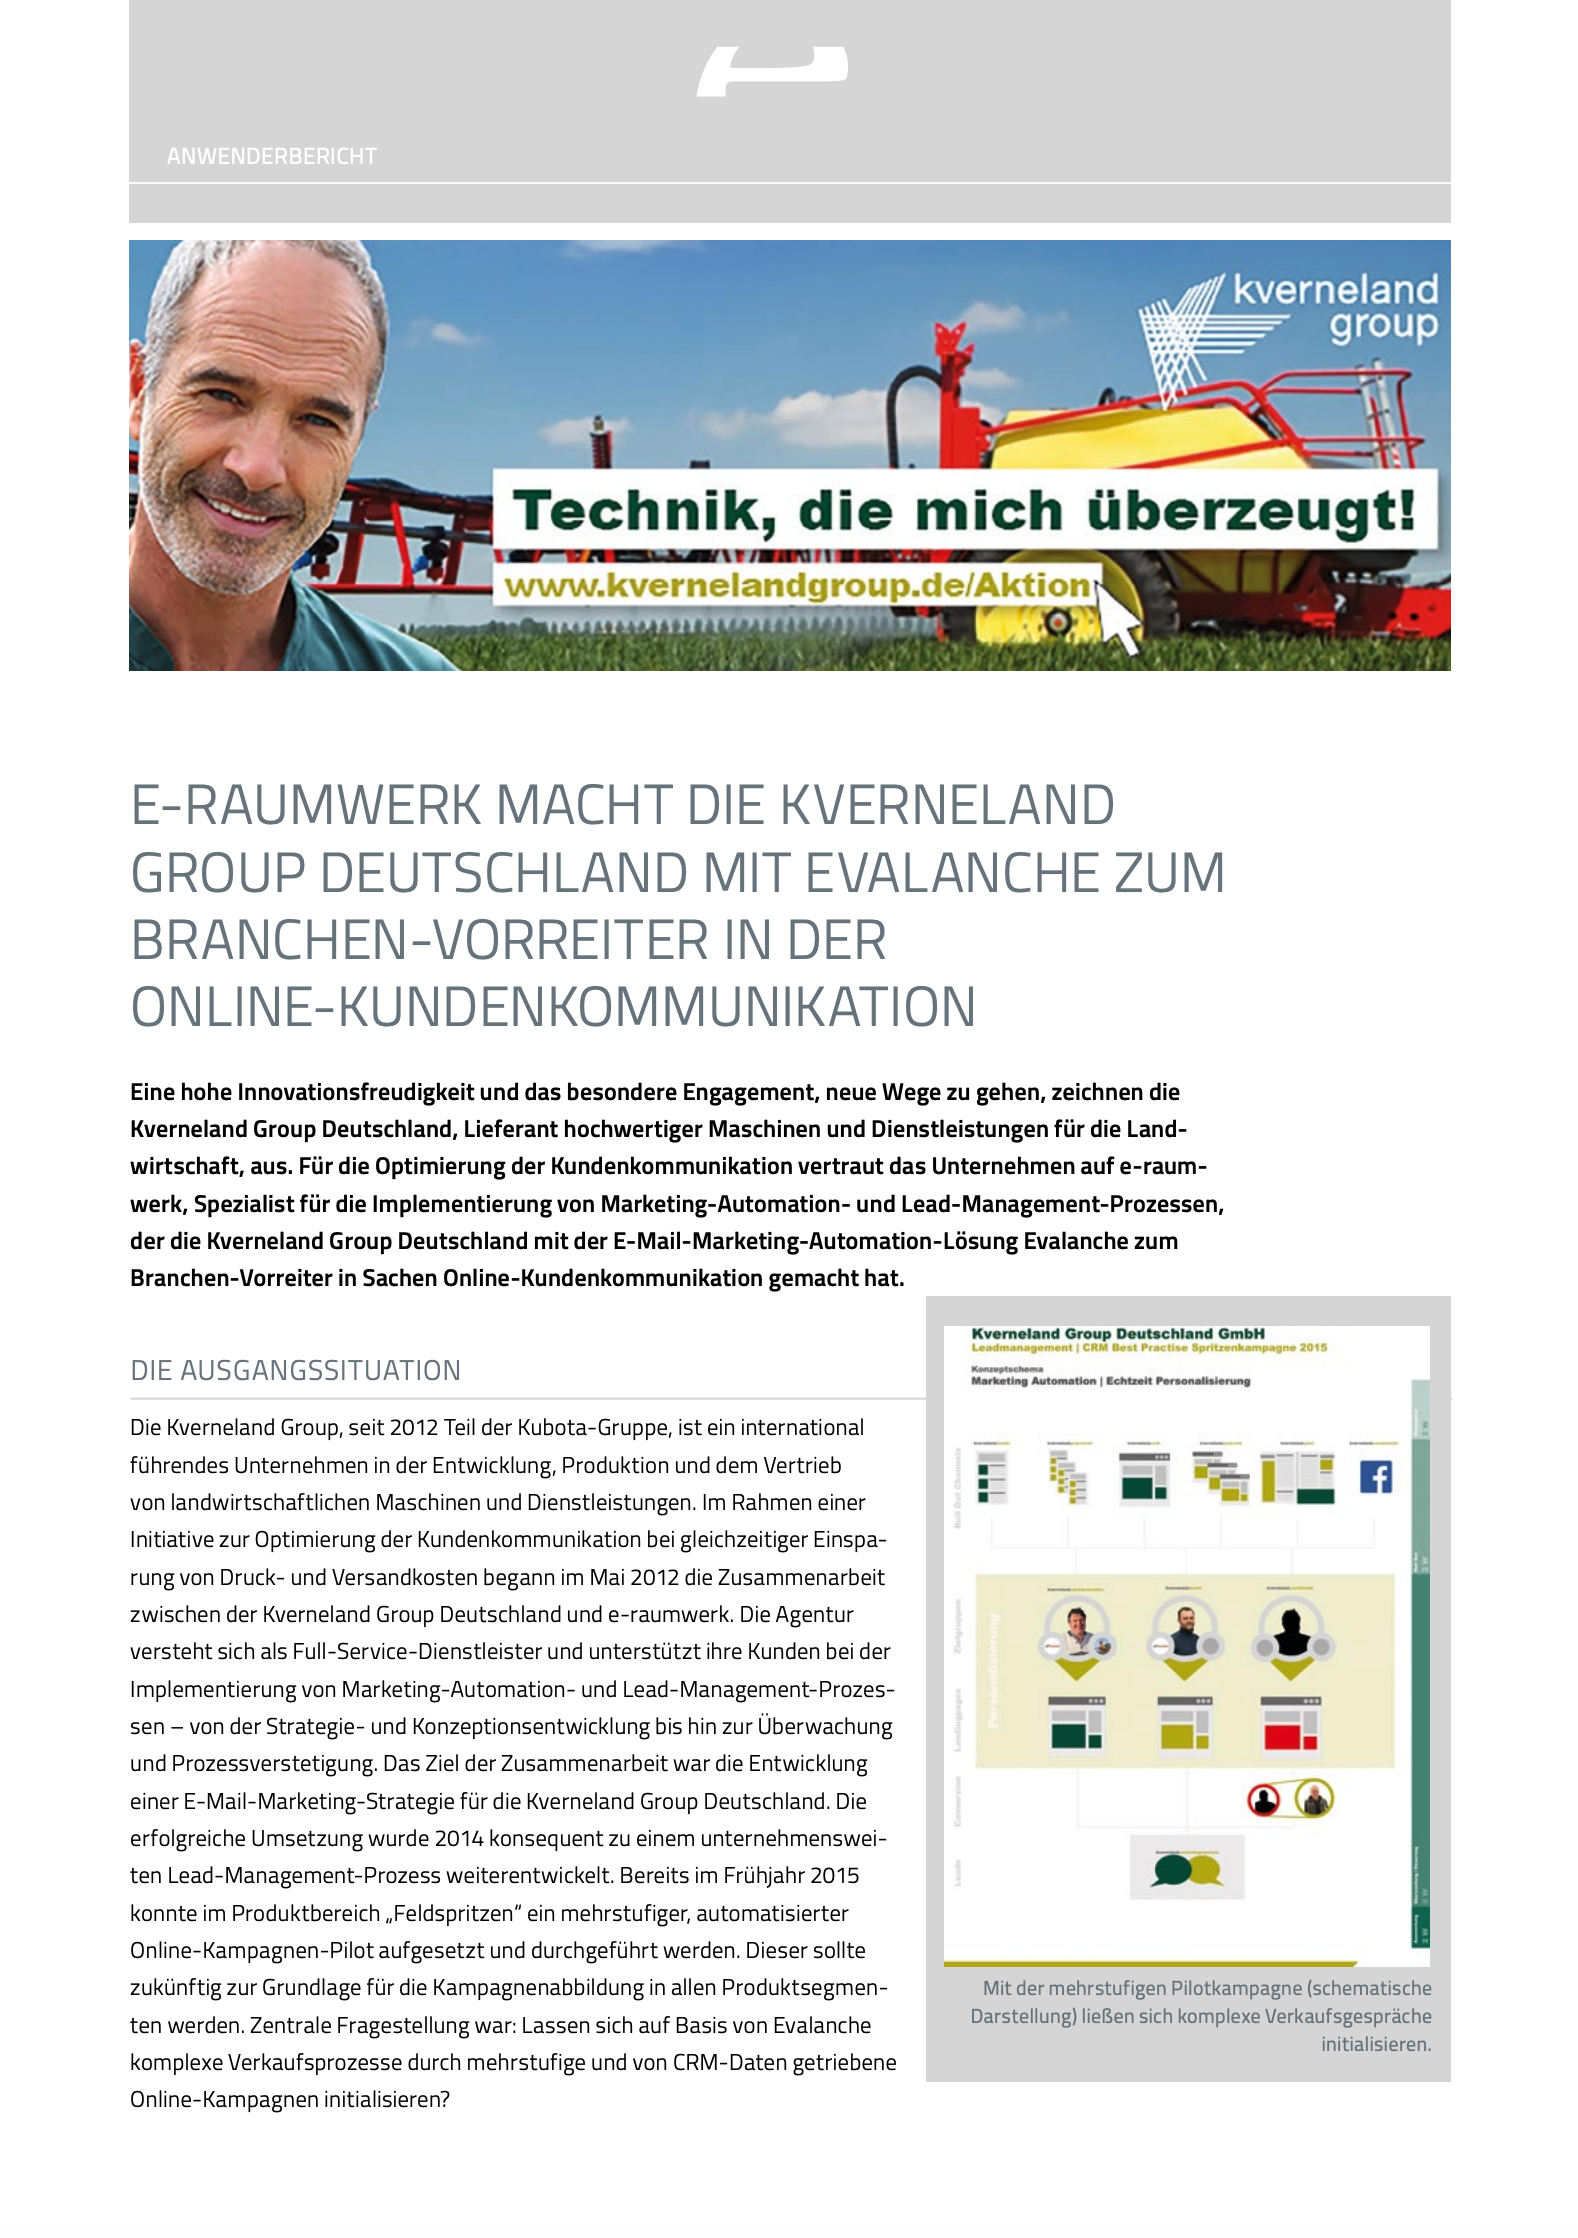 Marketing Automation Software Evalanche im Einsatz bei KVERNELAND